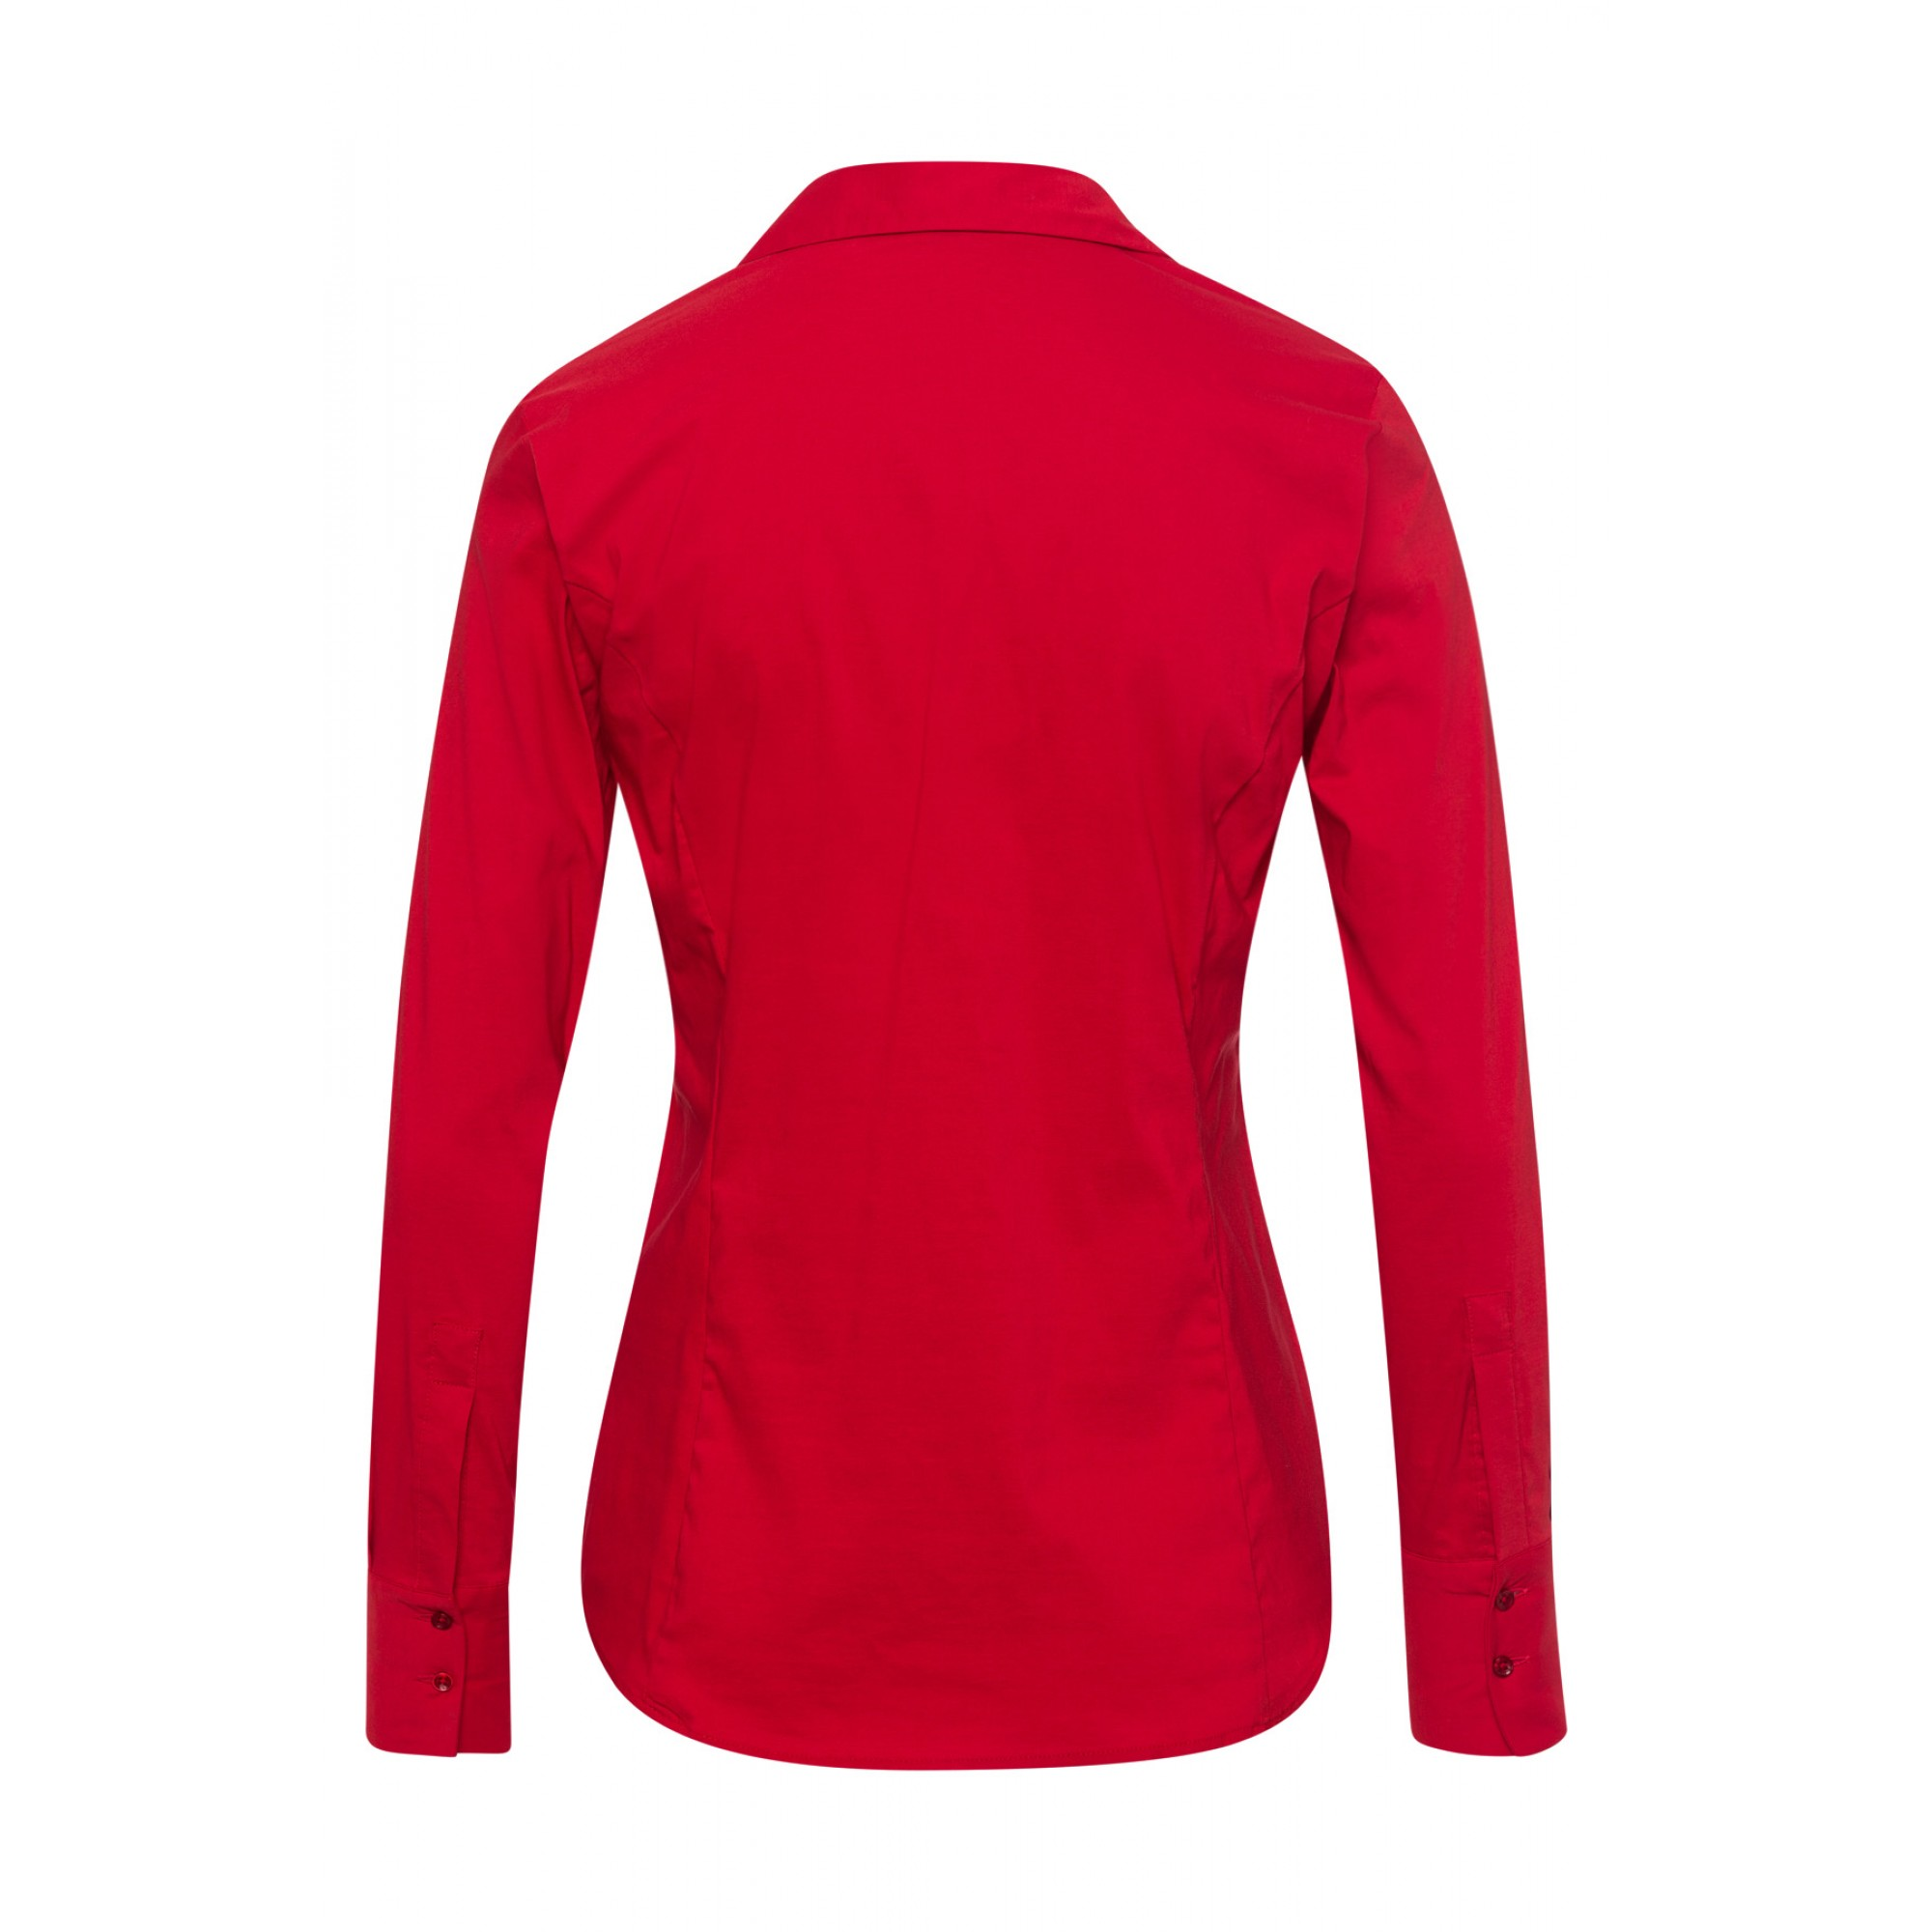 Businessbluse, autumn red 01102572-0545 2